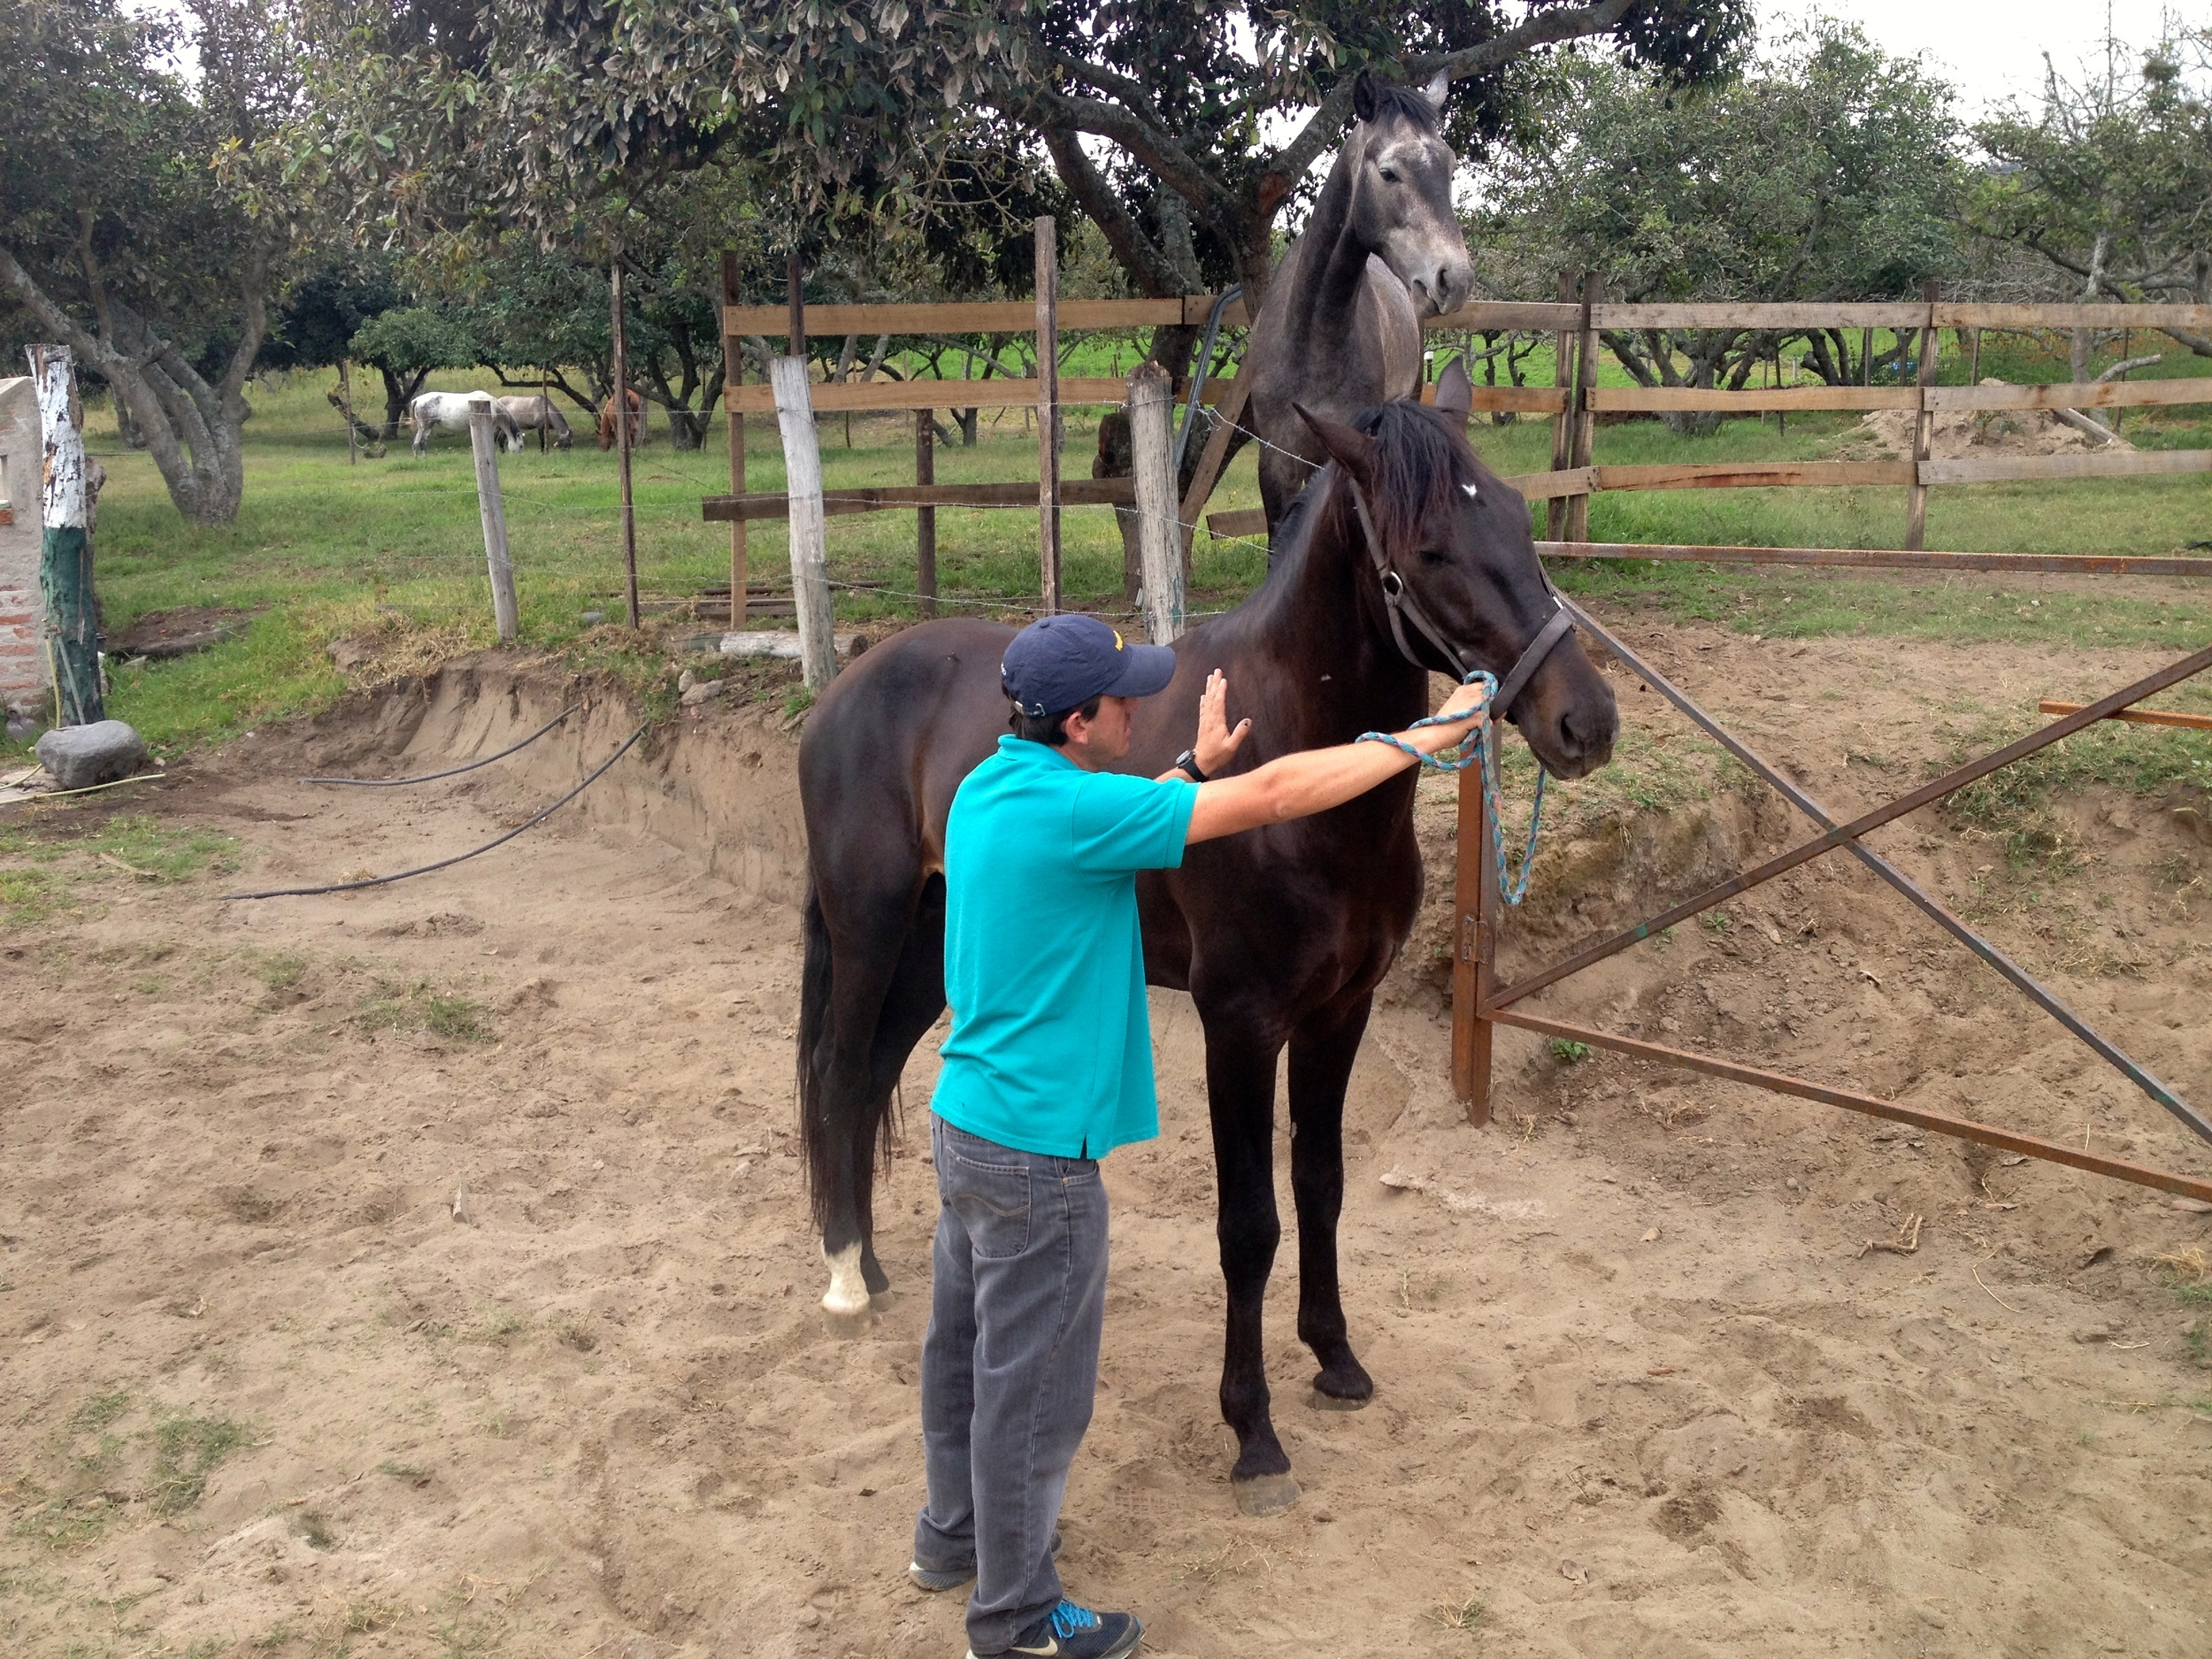 Loved our day at Mila's family's farm. This is her brother with a very spirited, huge horse.